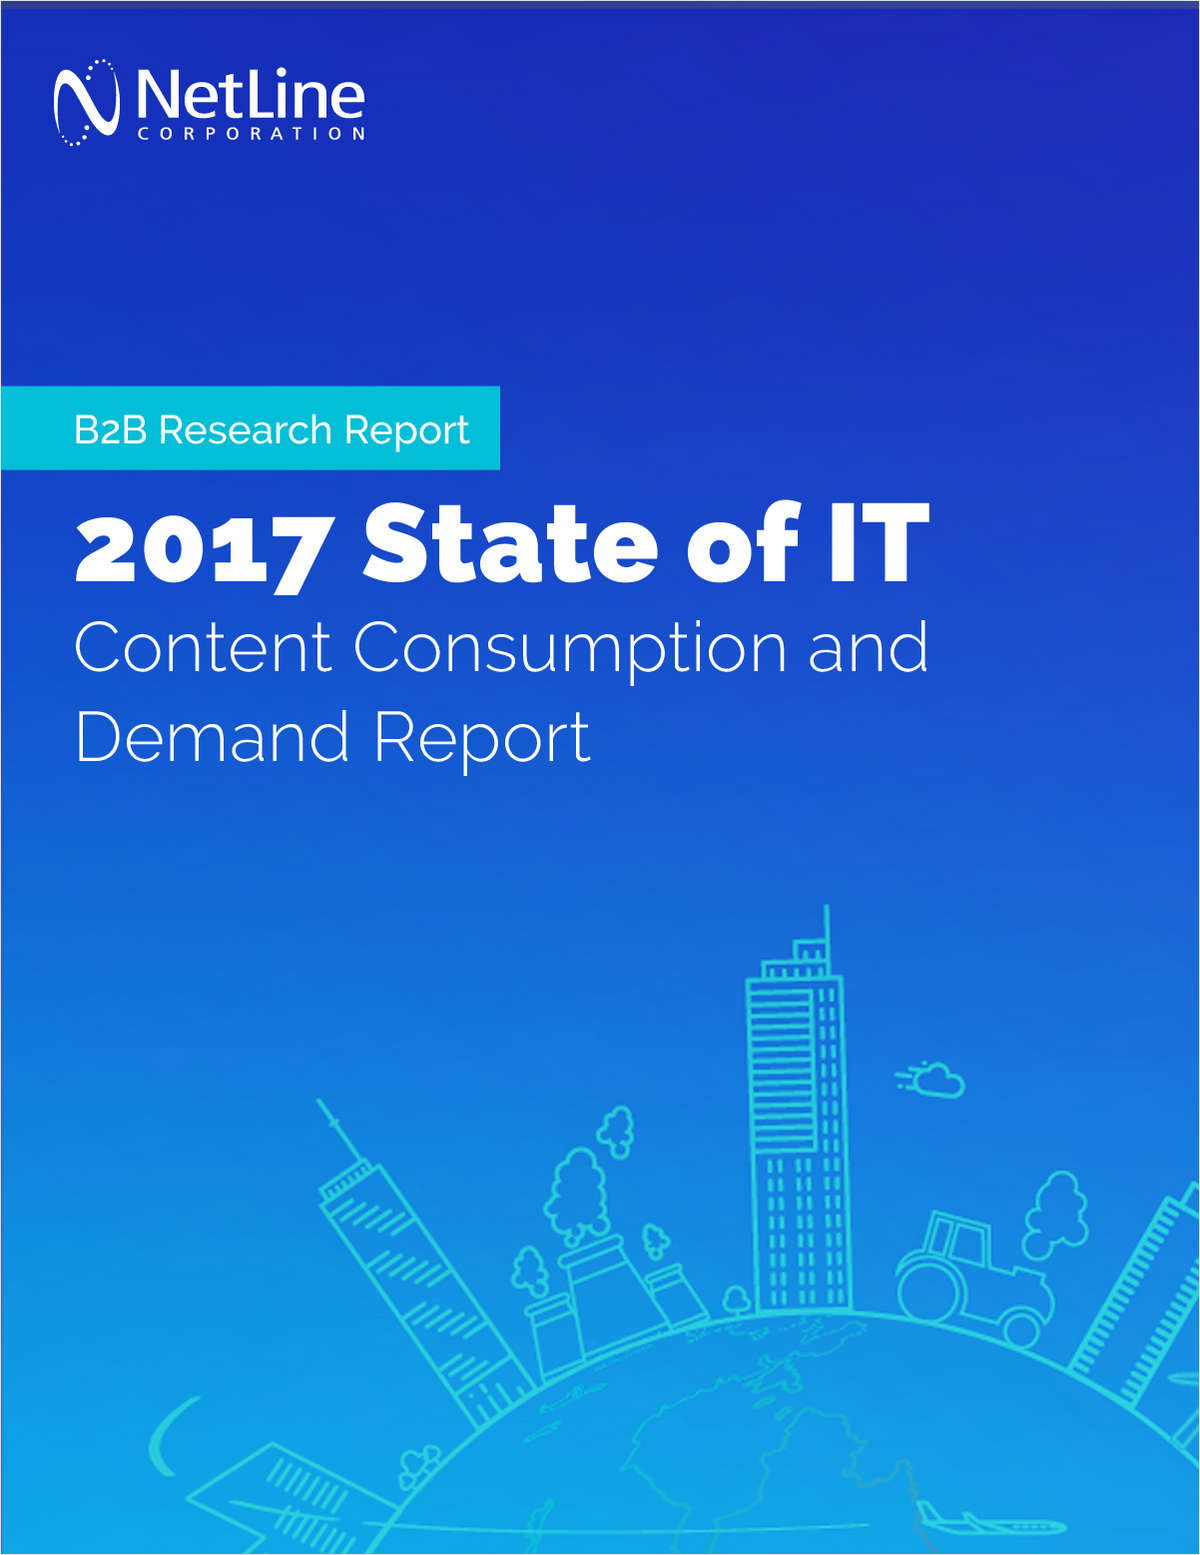 2017 State of IT Content Consumption and Demand Report for IT Marketers